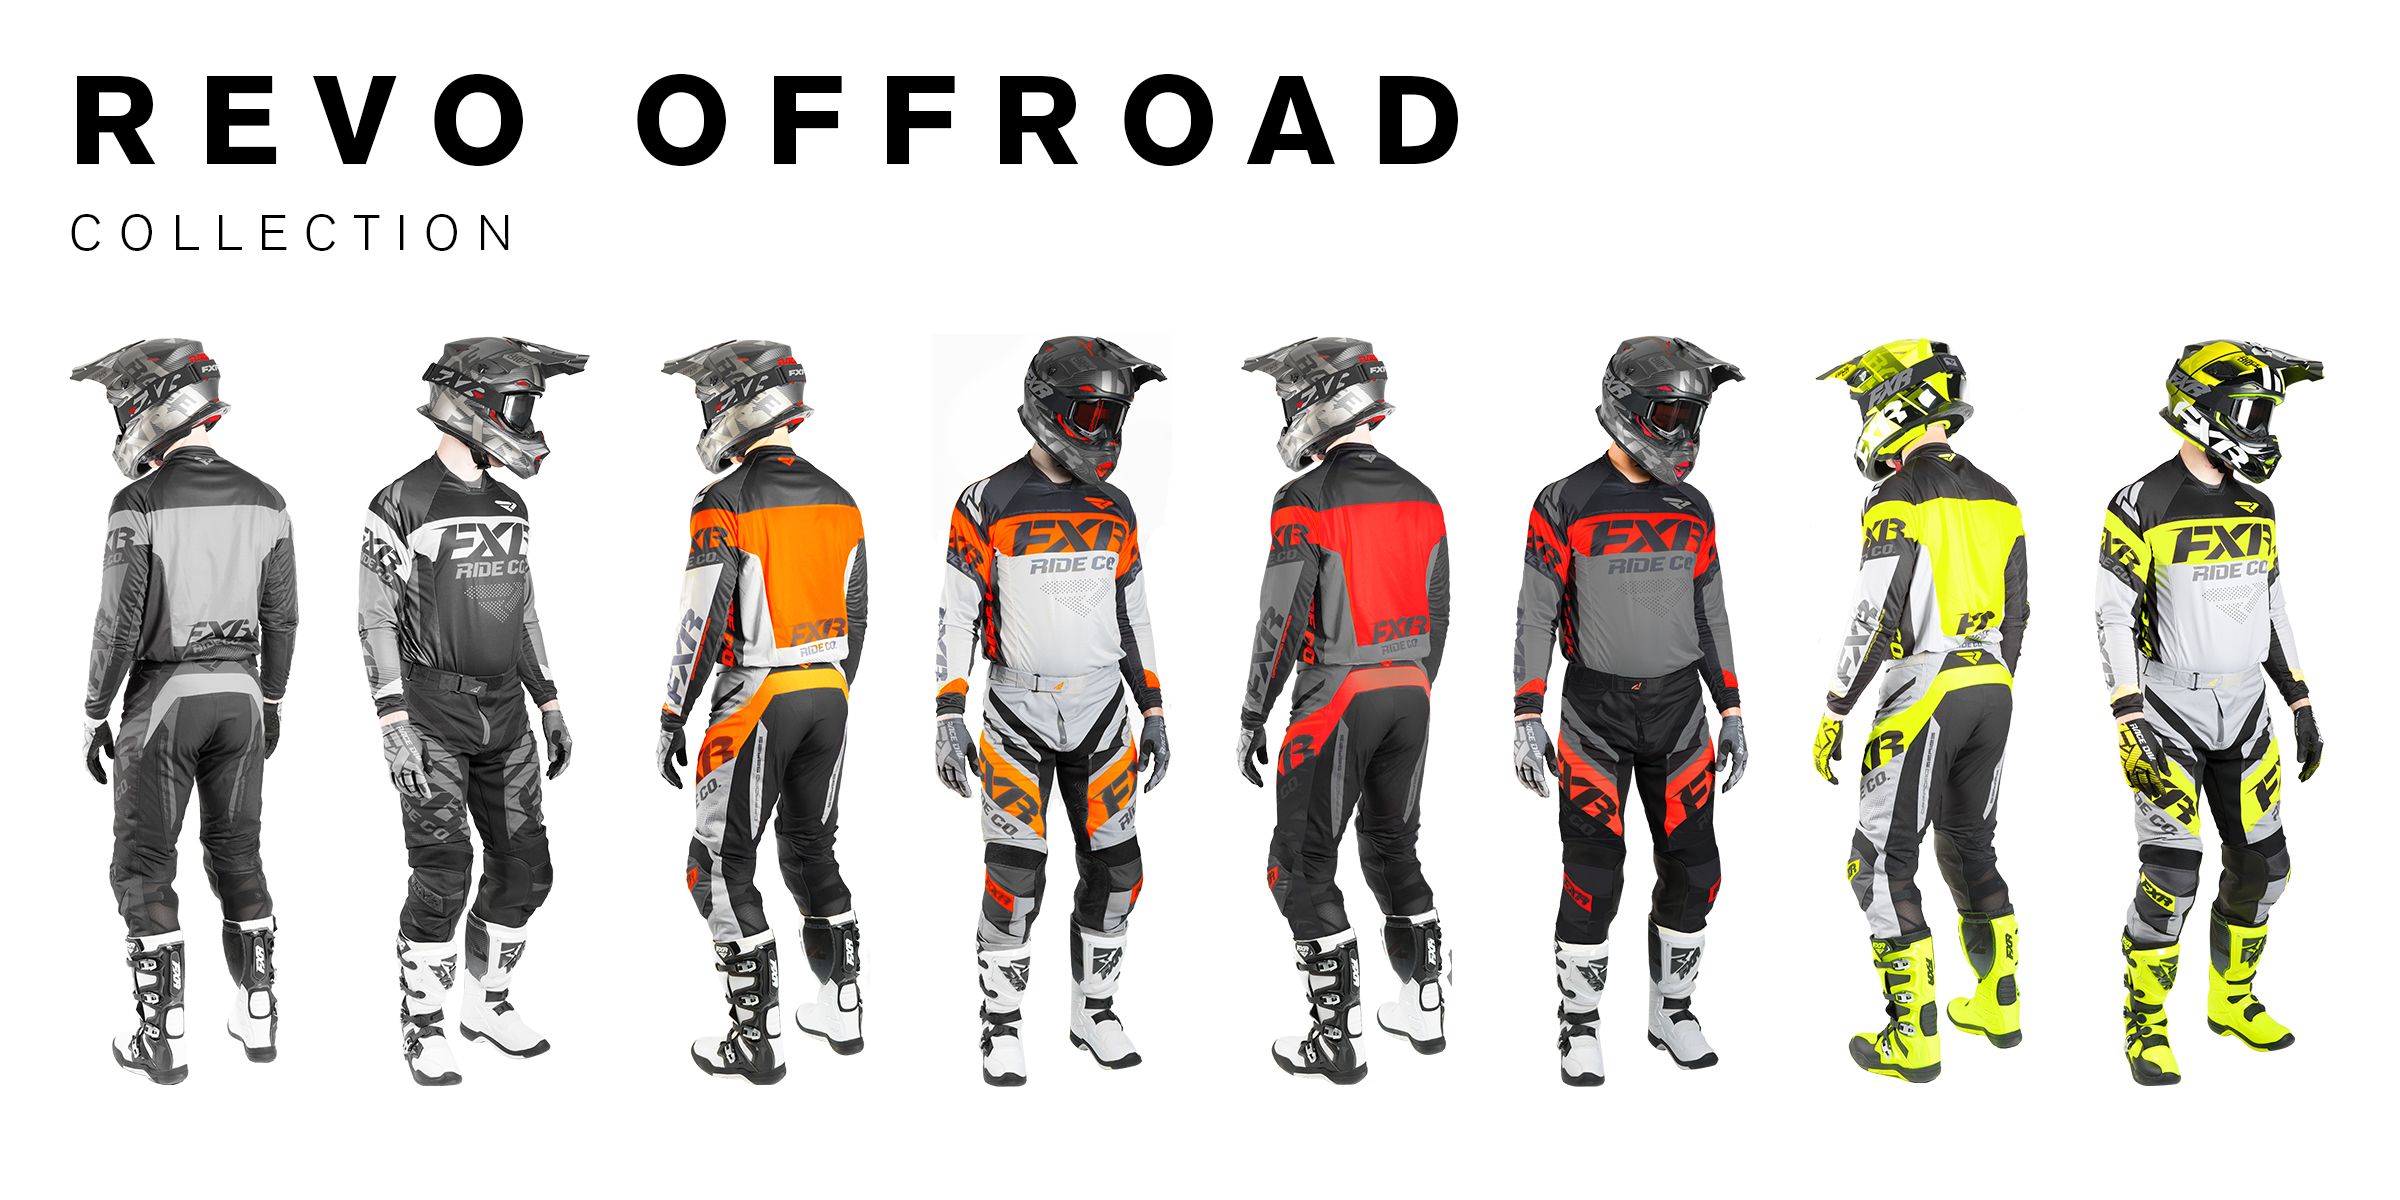 2018 Revo Offroad Collection 1.jpg